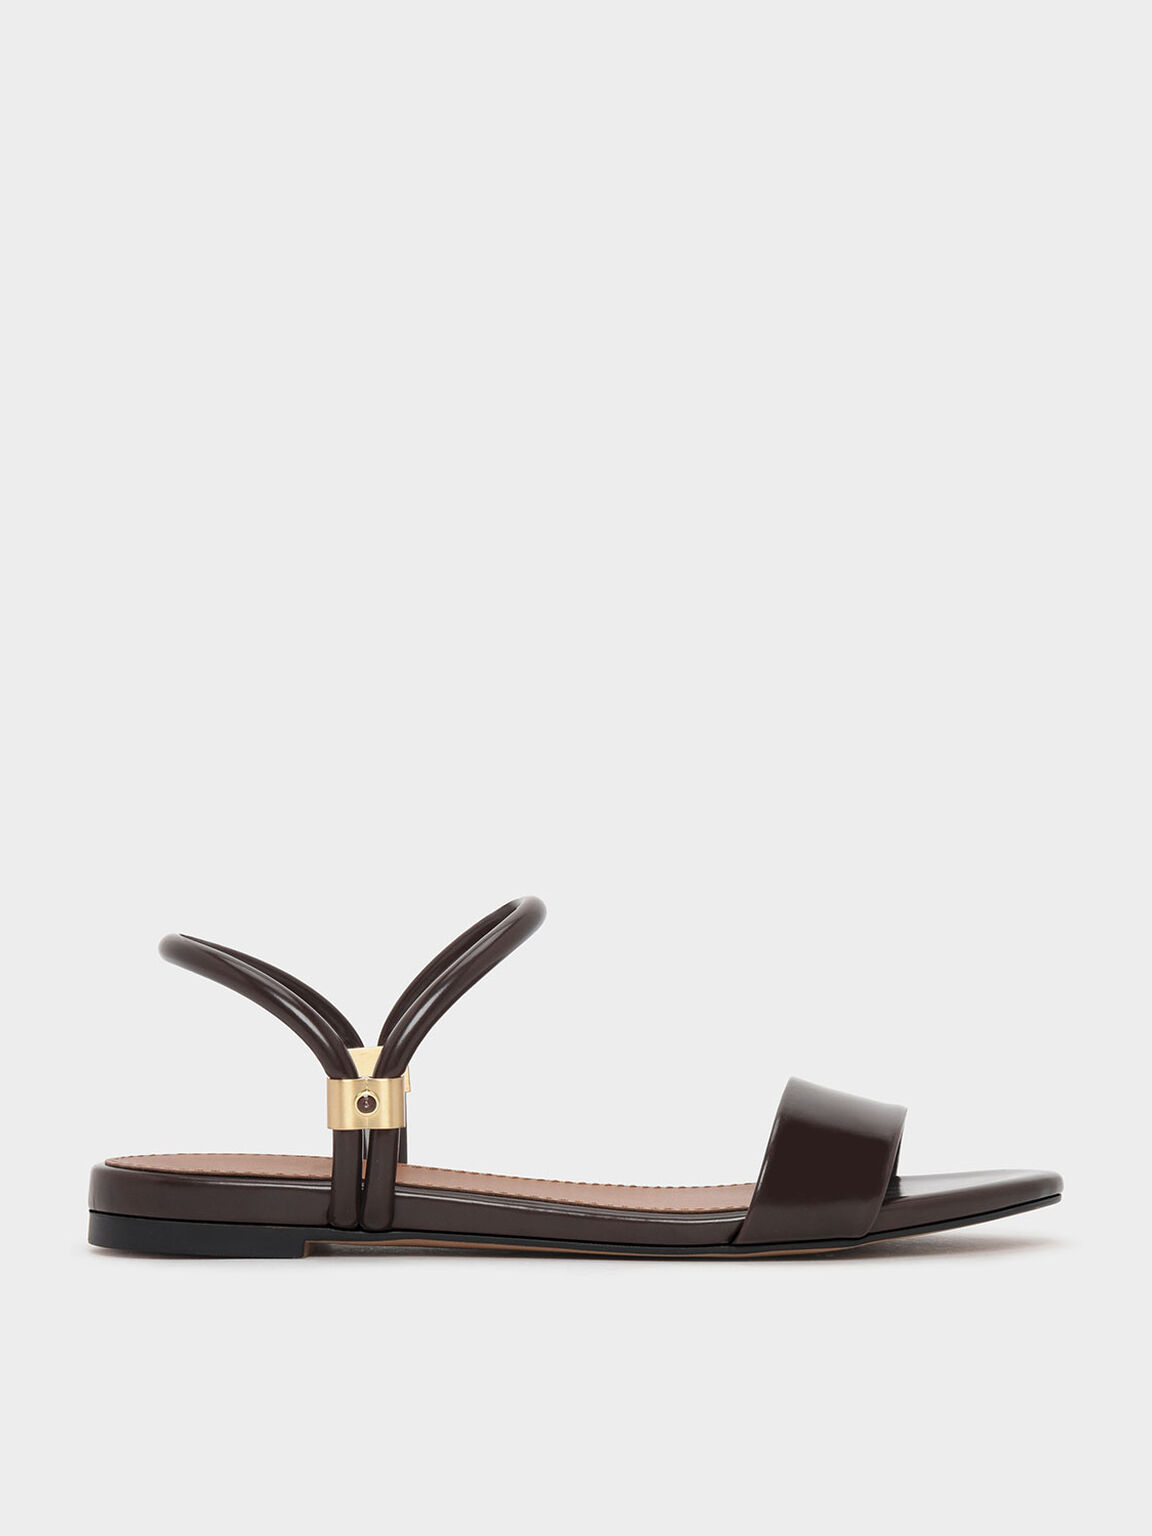 Two Way Sandals, Dark Brown, hi-res